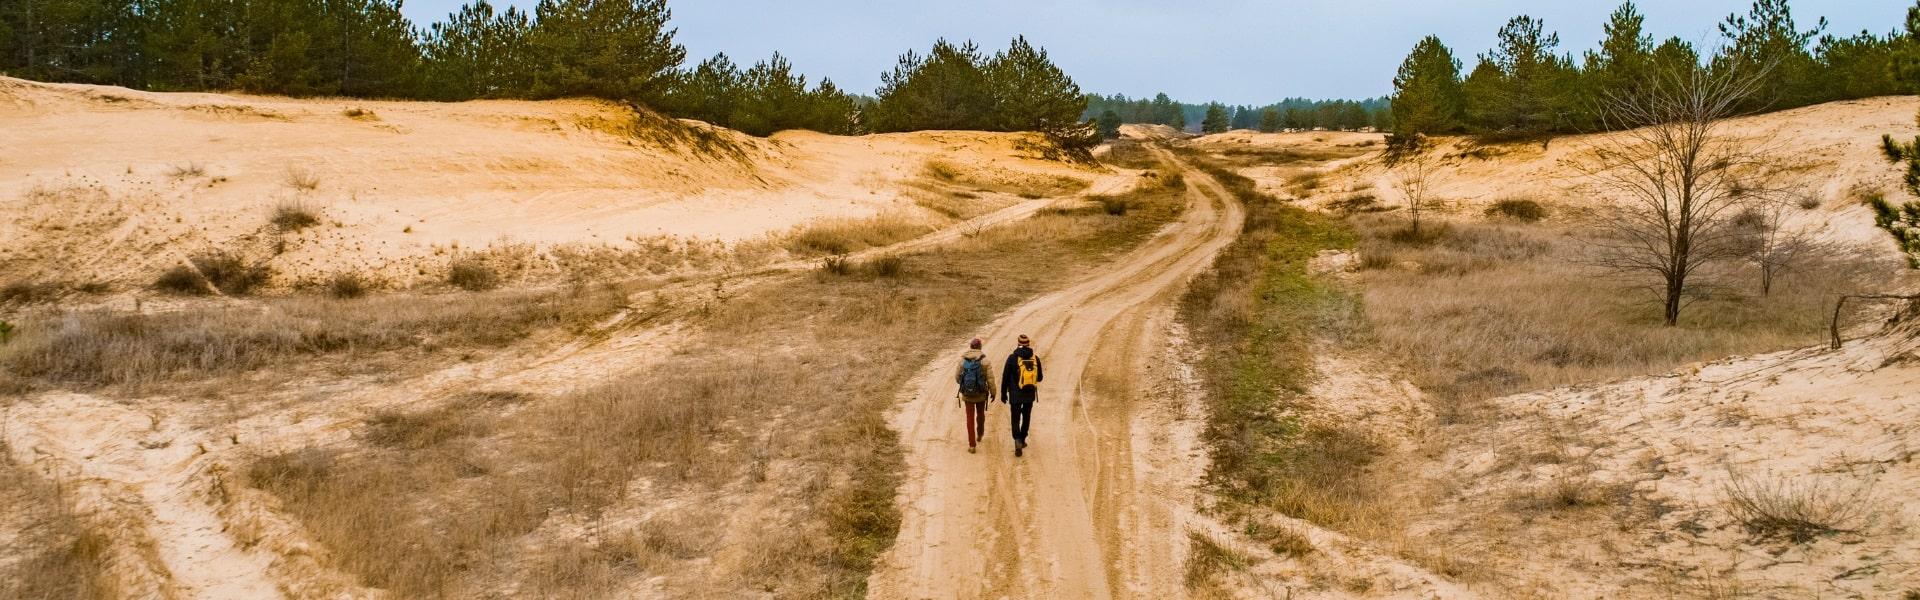 Hiking in Oleshky Sands: Everything you Need to Know about a Hike in the Ukrainian Desert